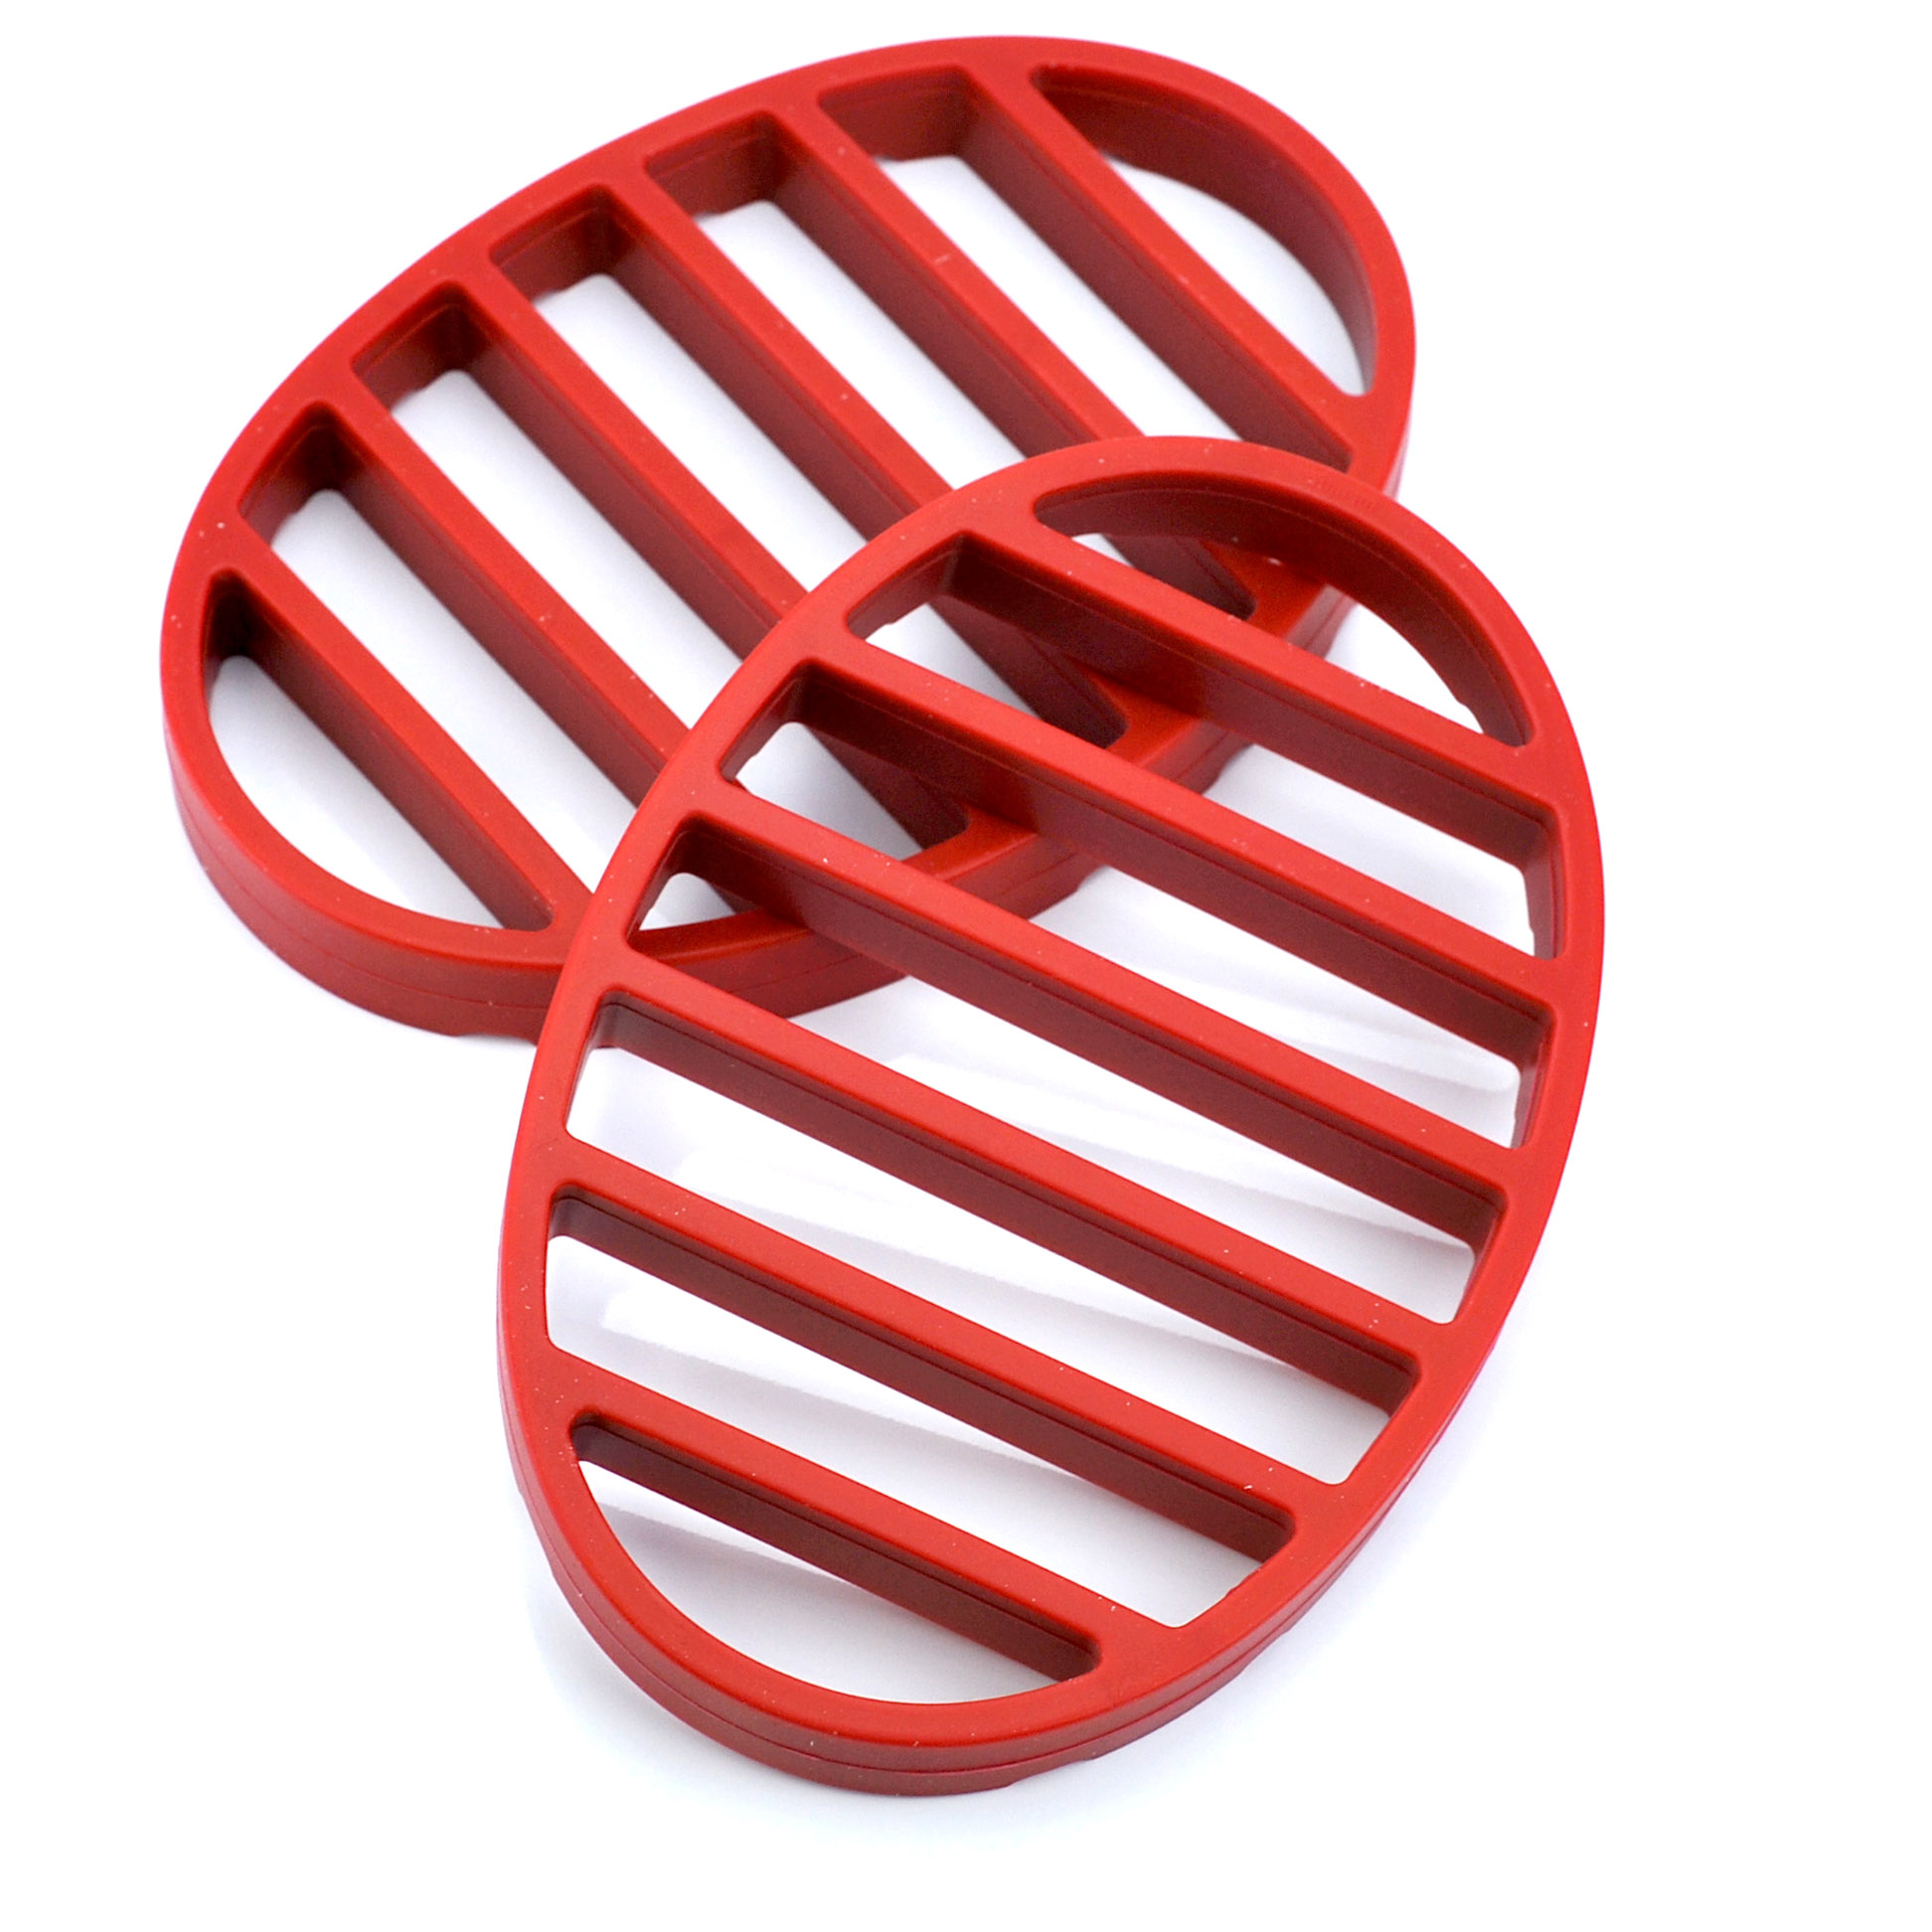 Roast Rack, Nonstick Silicone Oval Roasting Rack For Turkey Red (pack Of 2) by Norpro Kitchenware